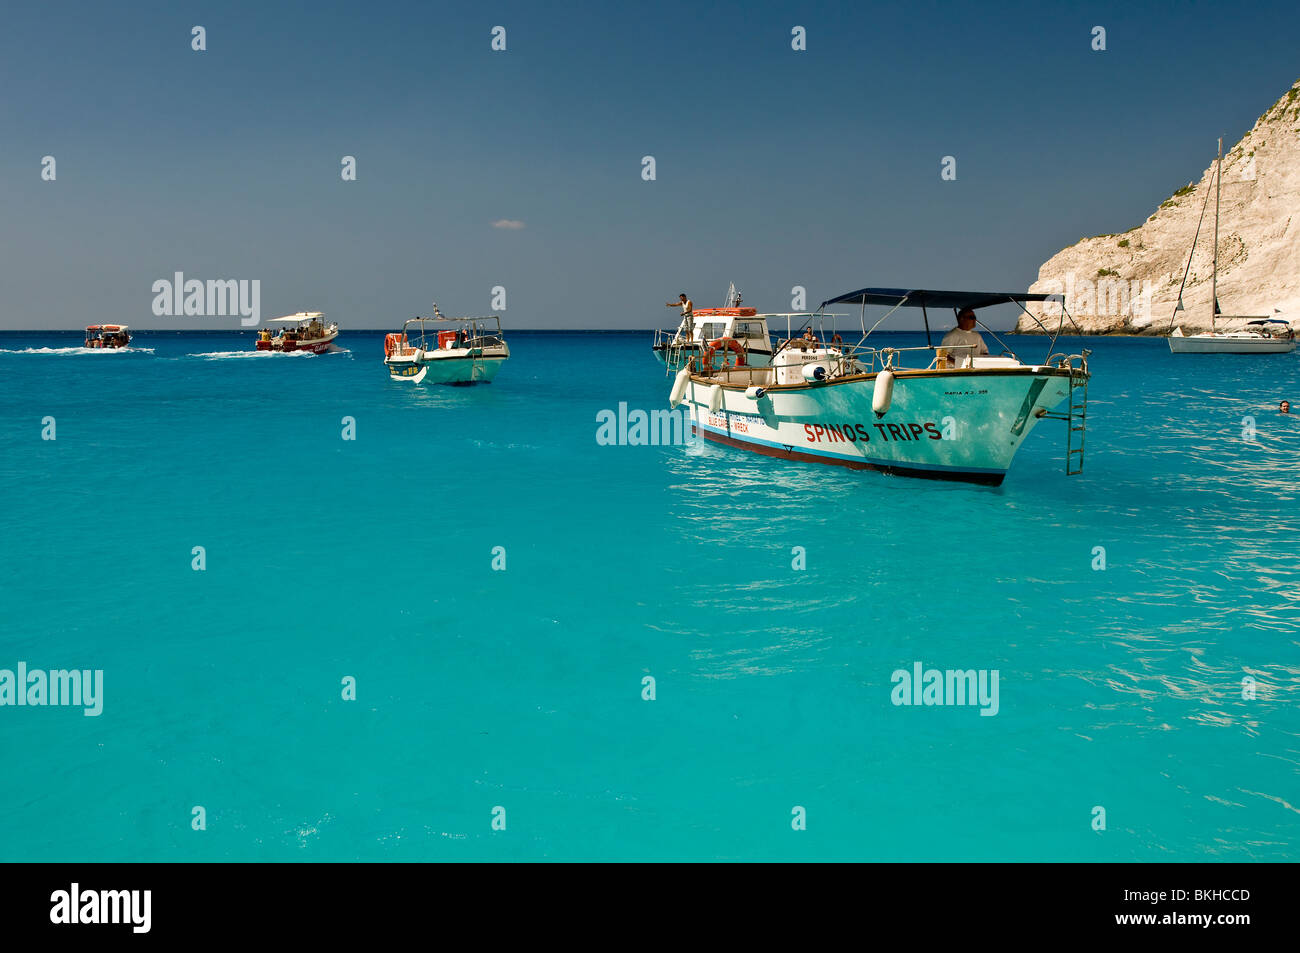 The beautiful beach ' The wreck' / Navagio in island of Zakynthos, ionian islands, Greece, boat trips - Stock Image